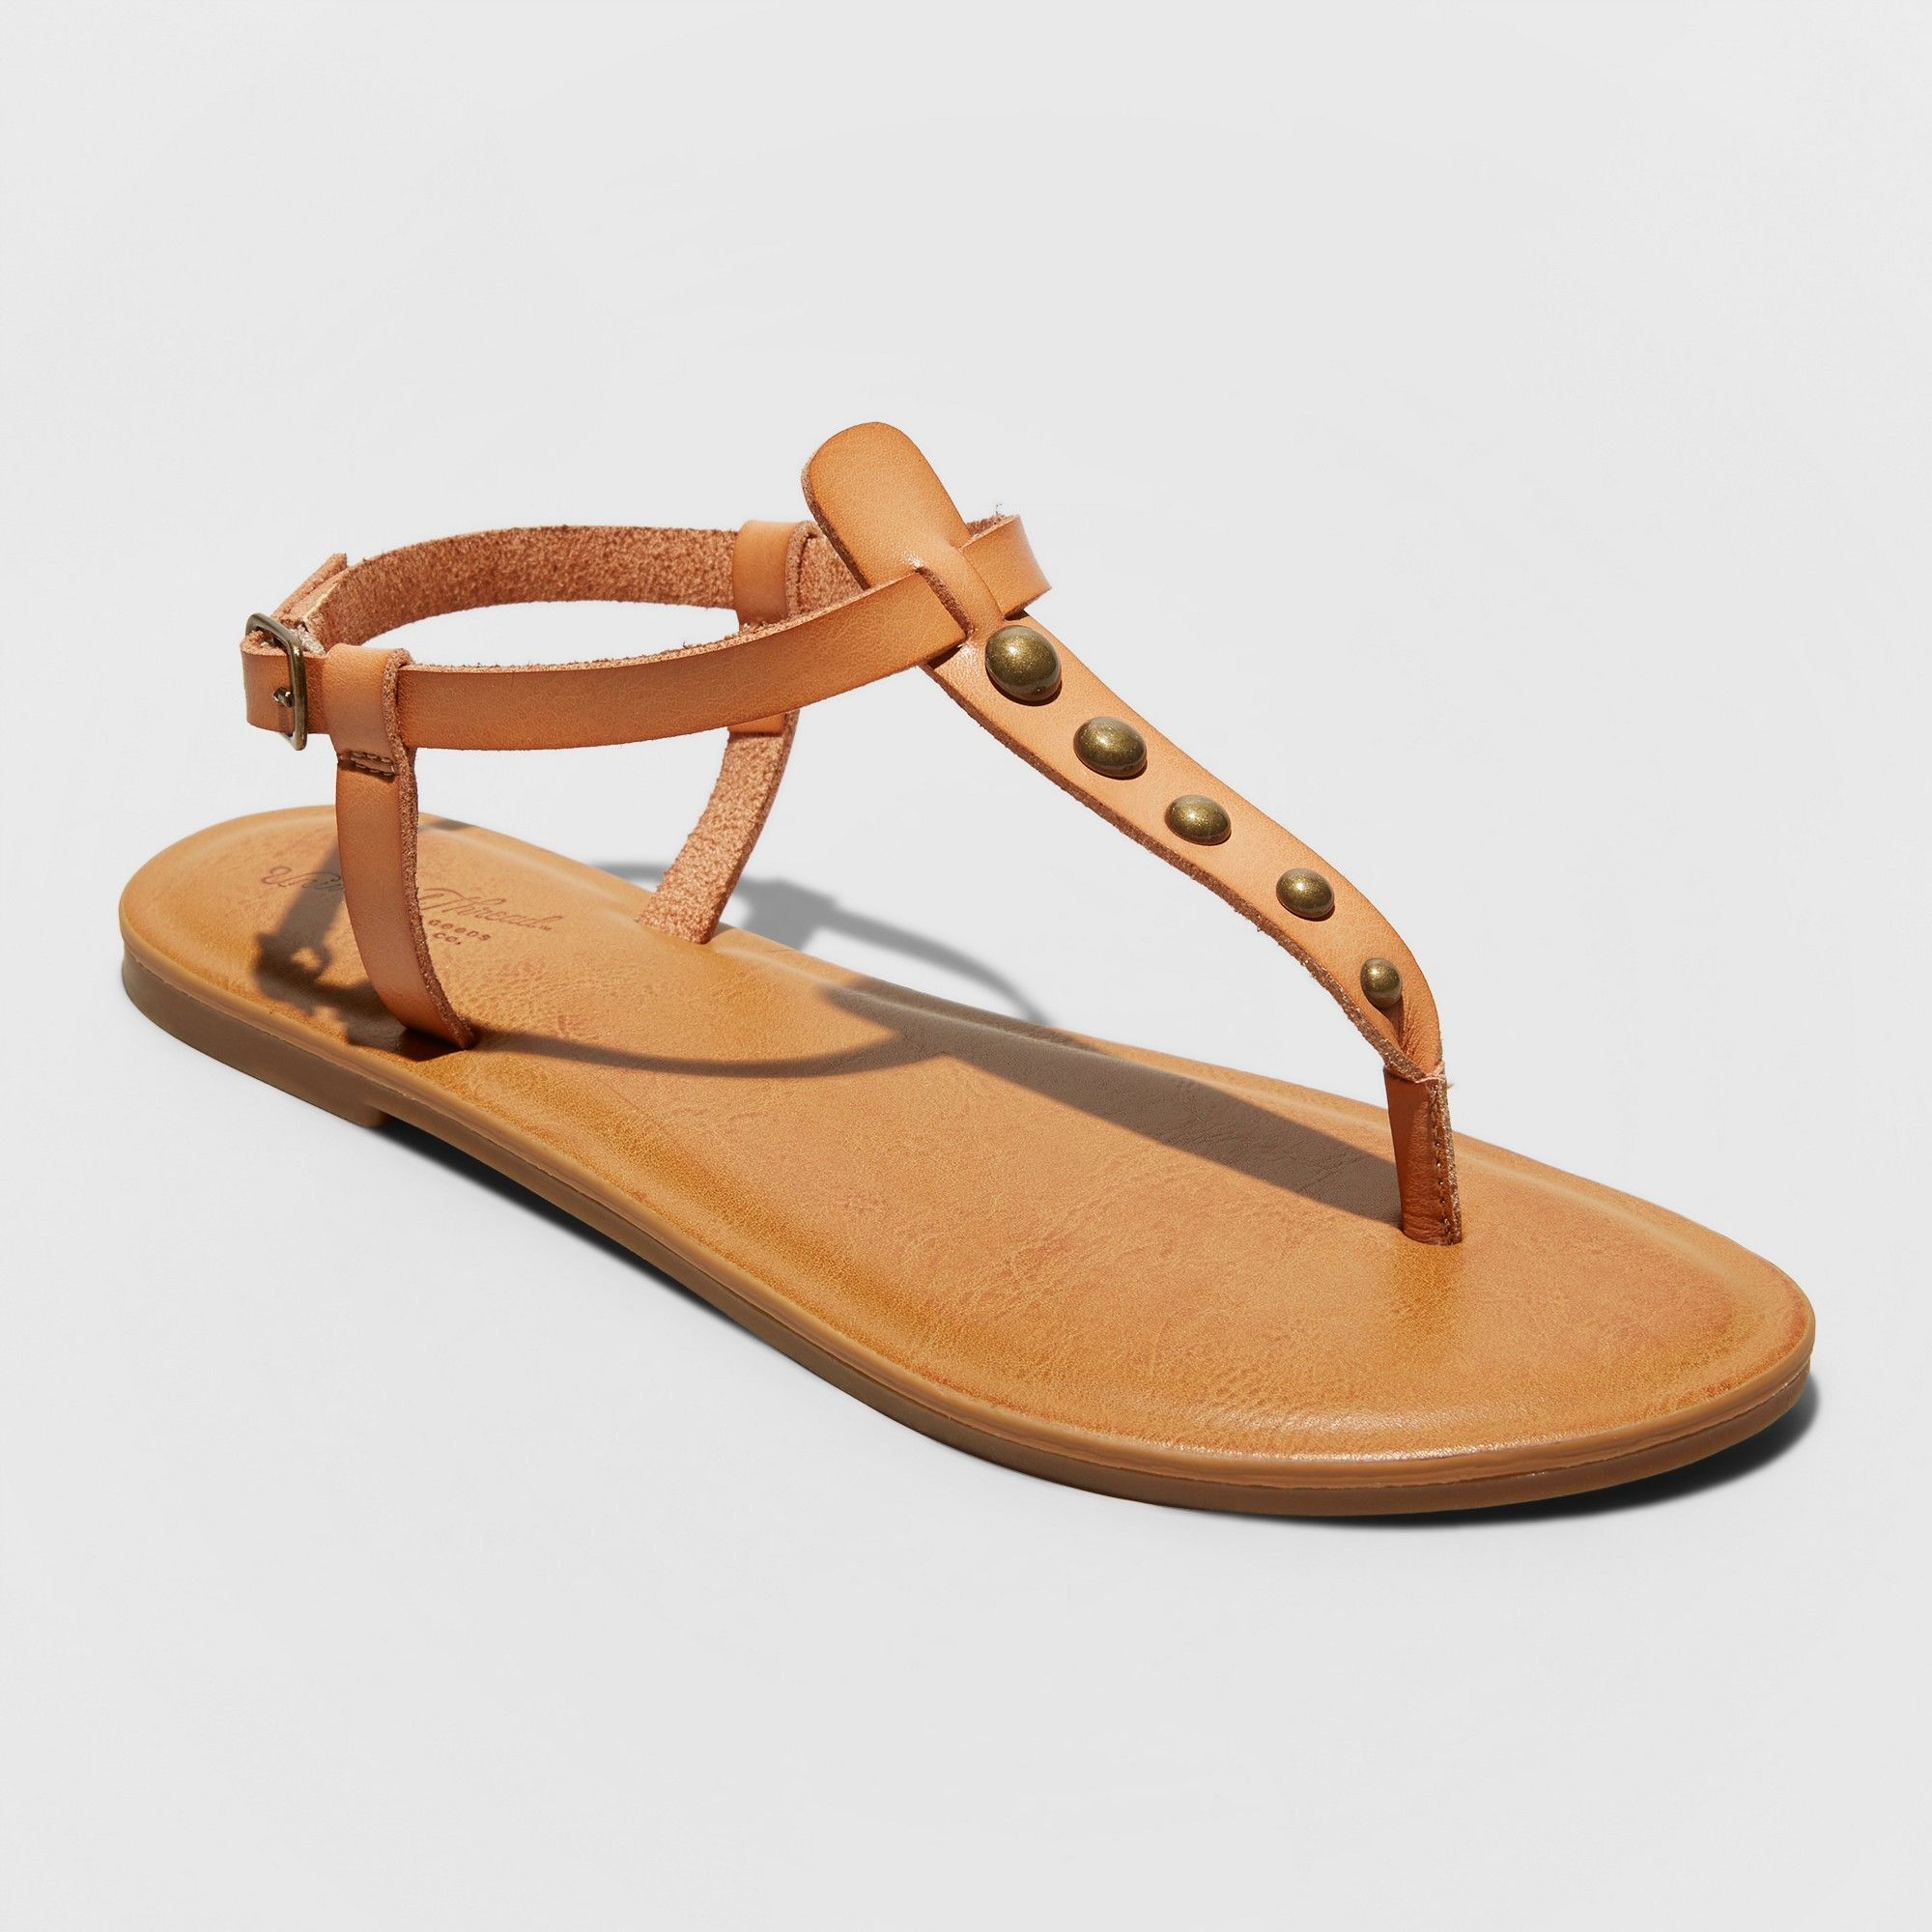 a9d6695d7 Women's Kylianne Thong Sandals - Universal Thread Tan 5.5 | Products ...